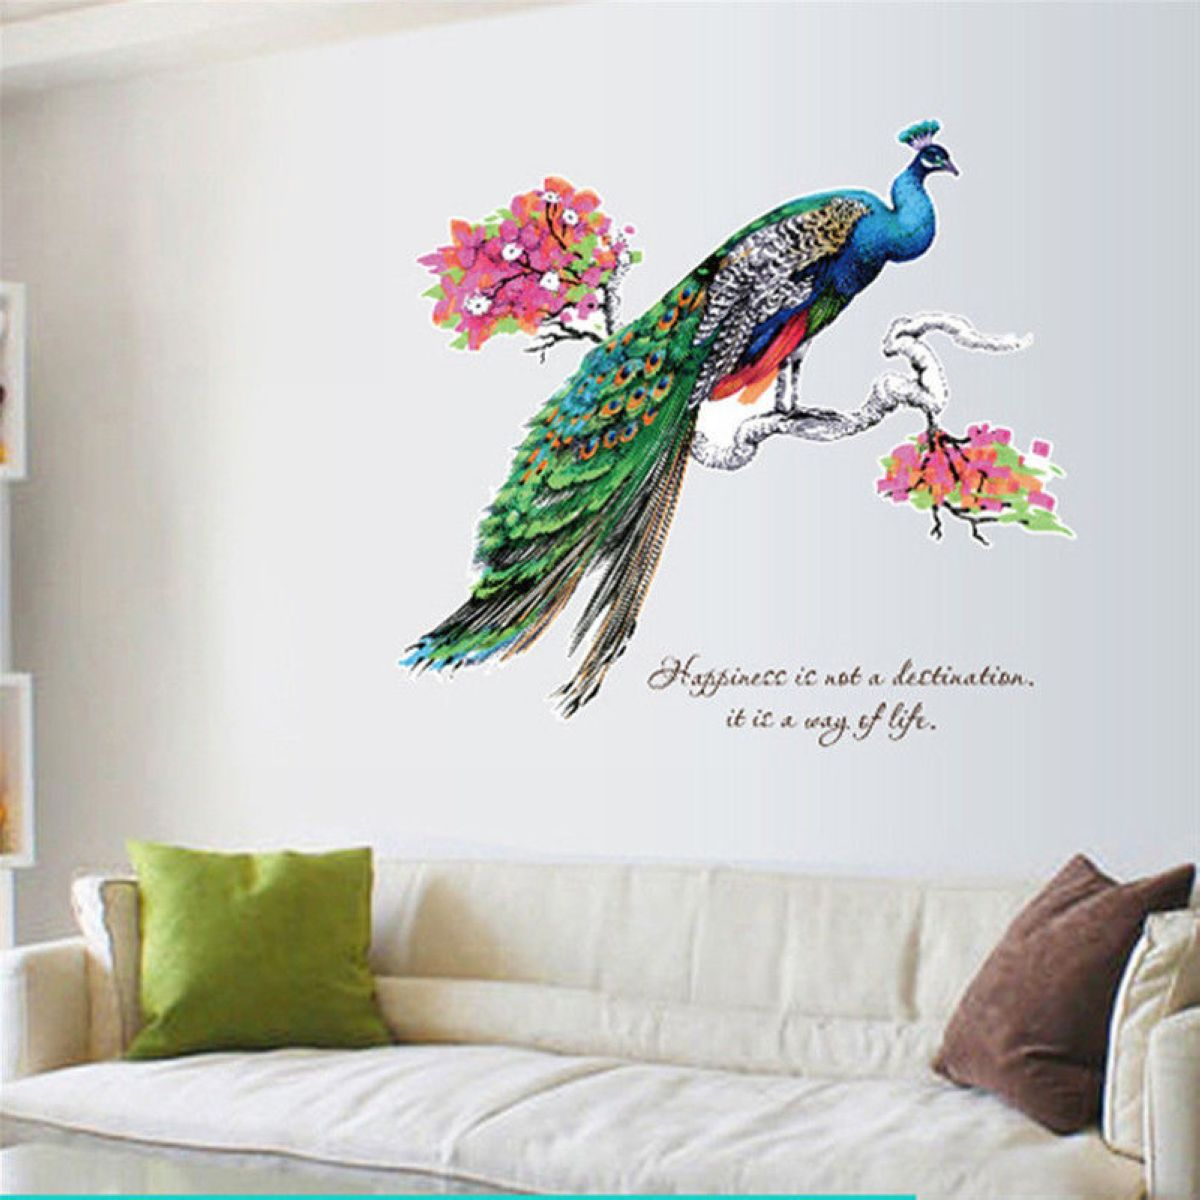 Delightful Fancy Peacock Wall Sticker Vinyl Removable Living Room Animal Decal Home  Mural Art Decoration Mayitr